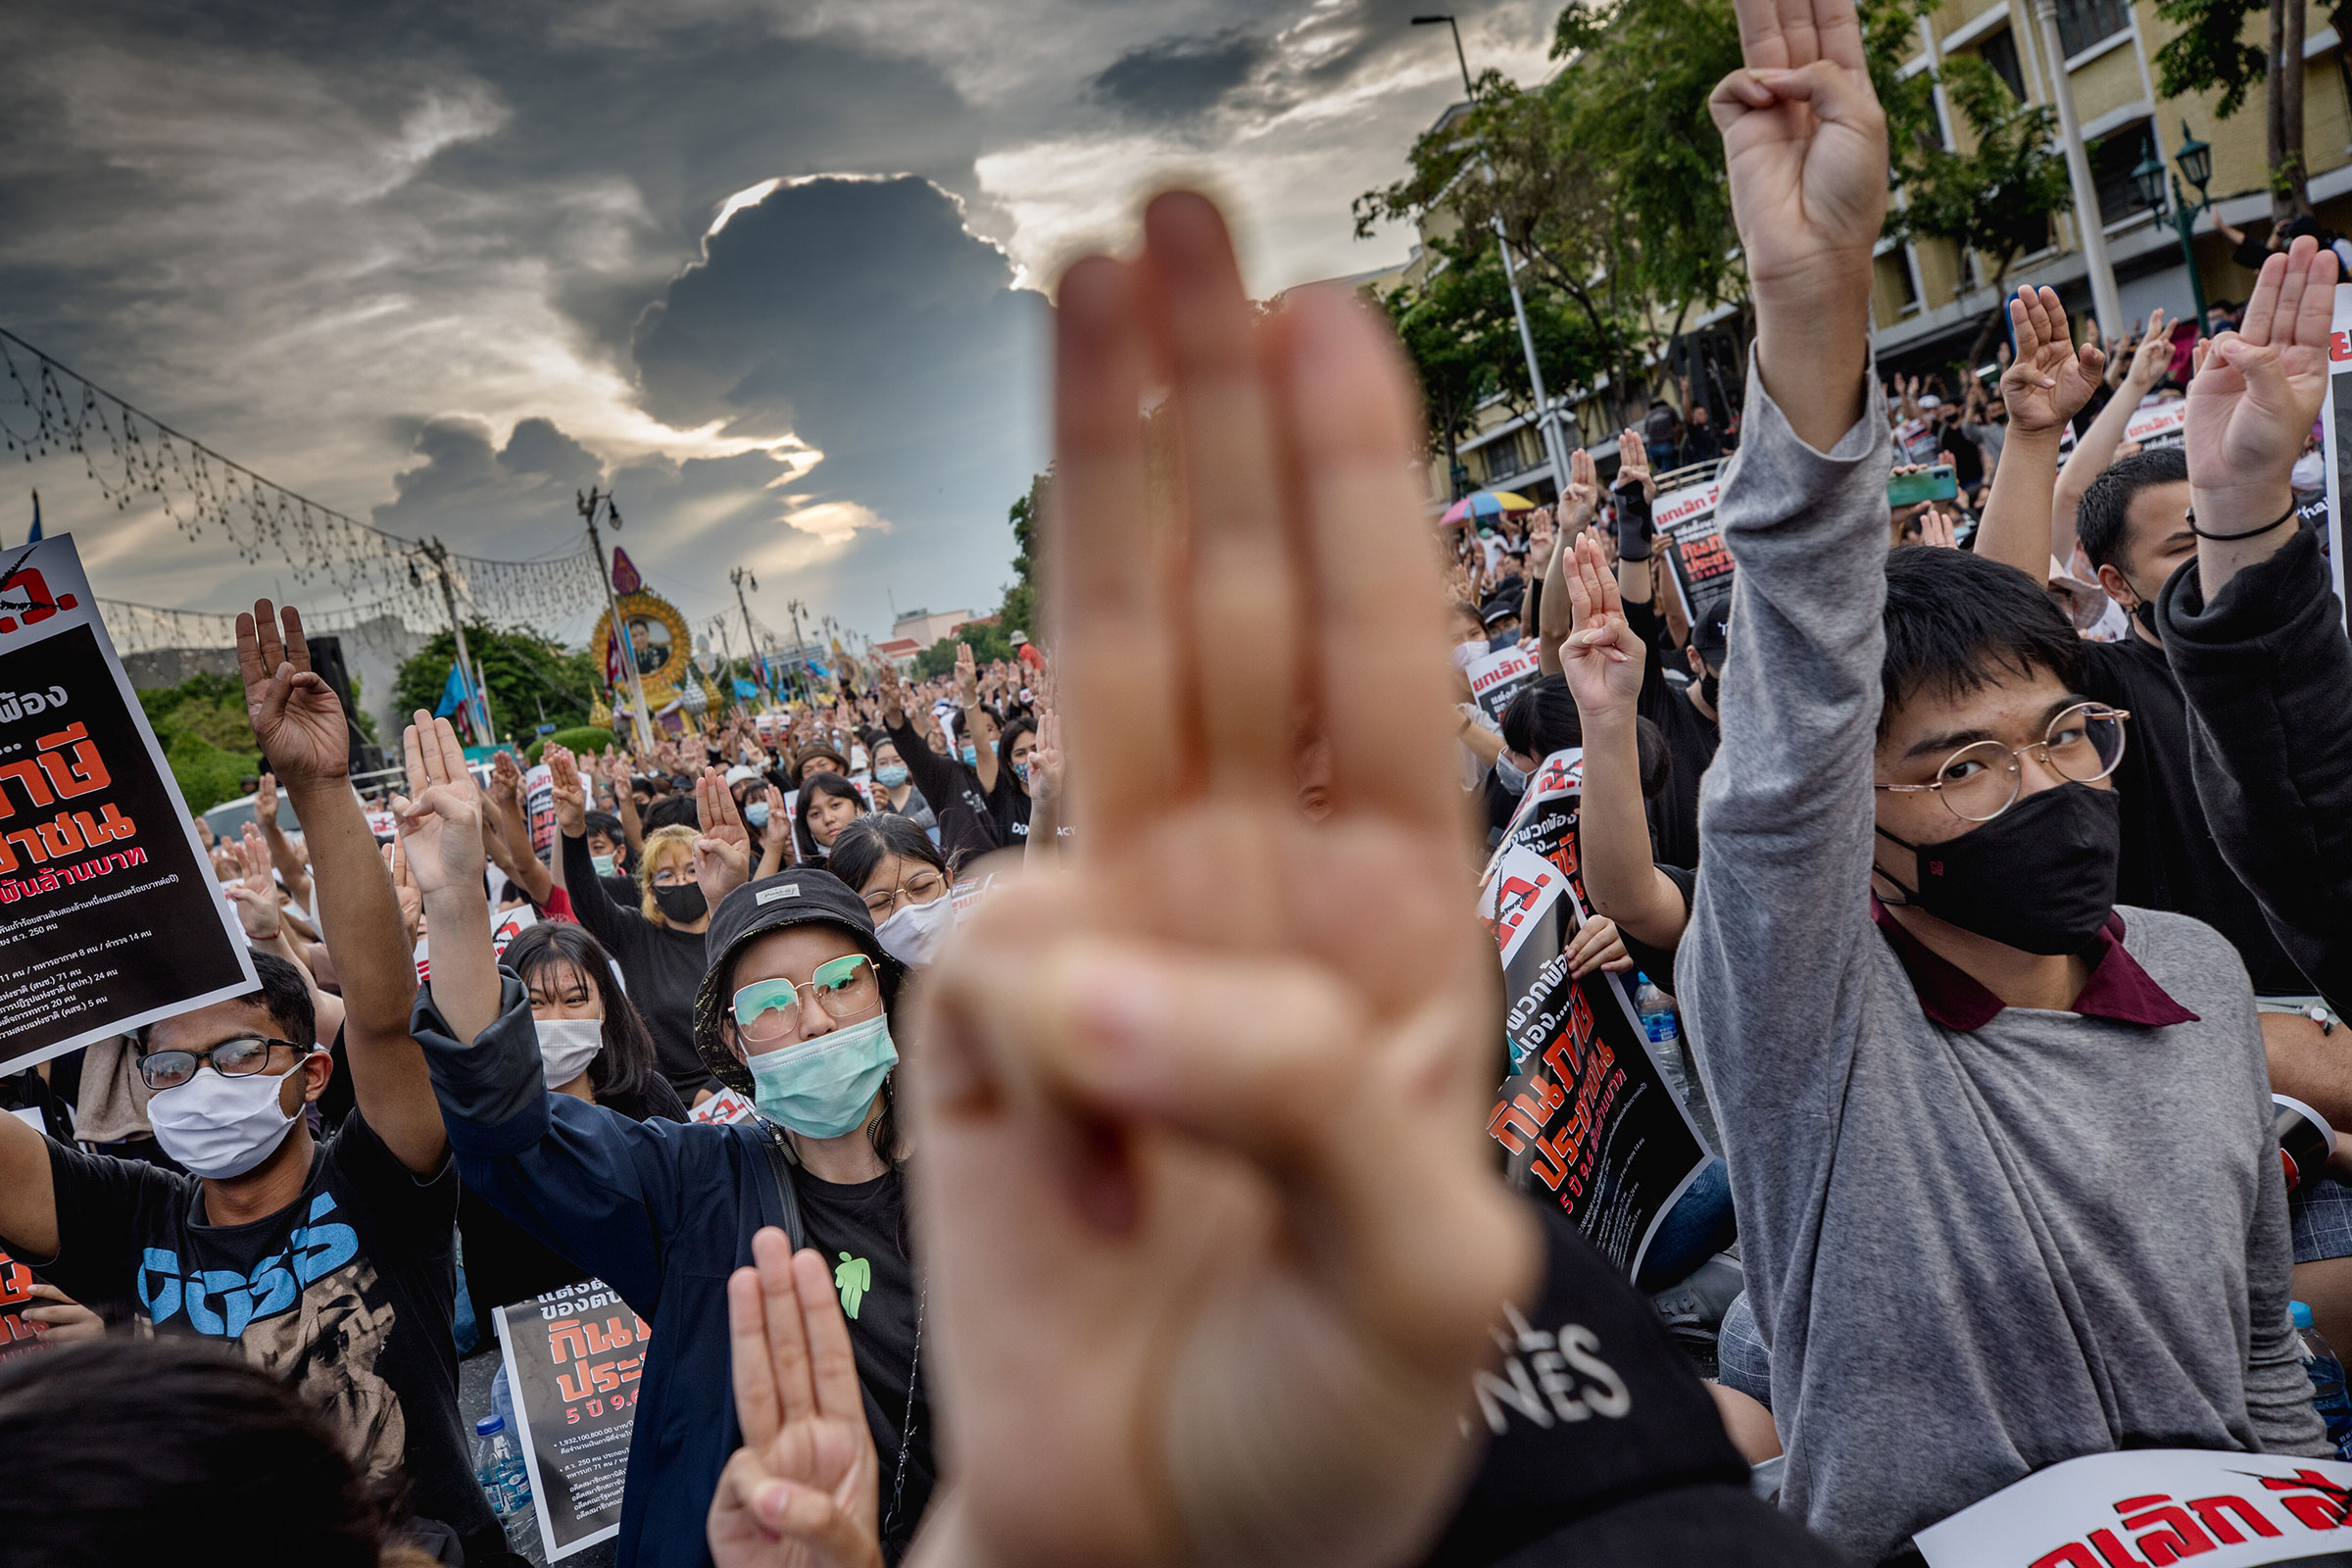 Protesters perform a 'Hunger Games' three finger salute during anti-government demonstration in Bangkok on Aug. 16, 2020.